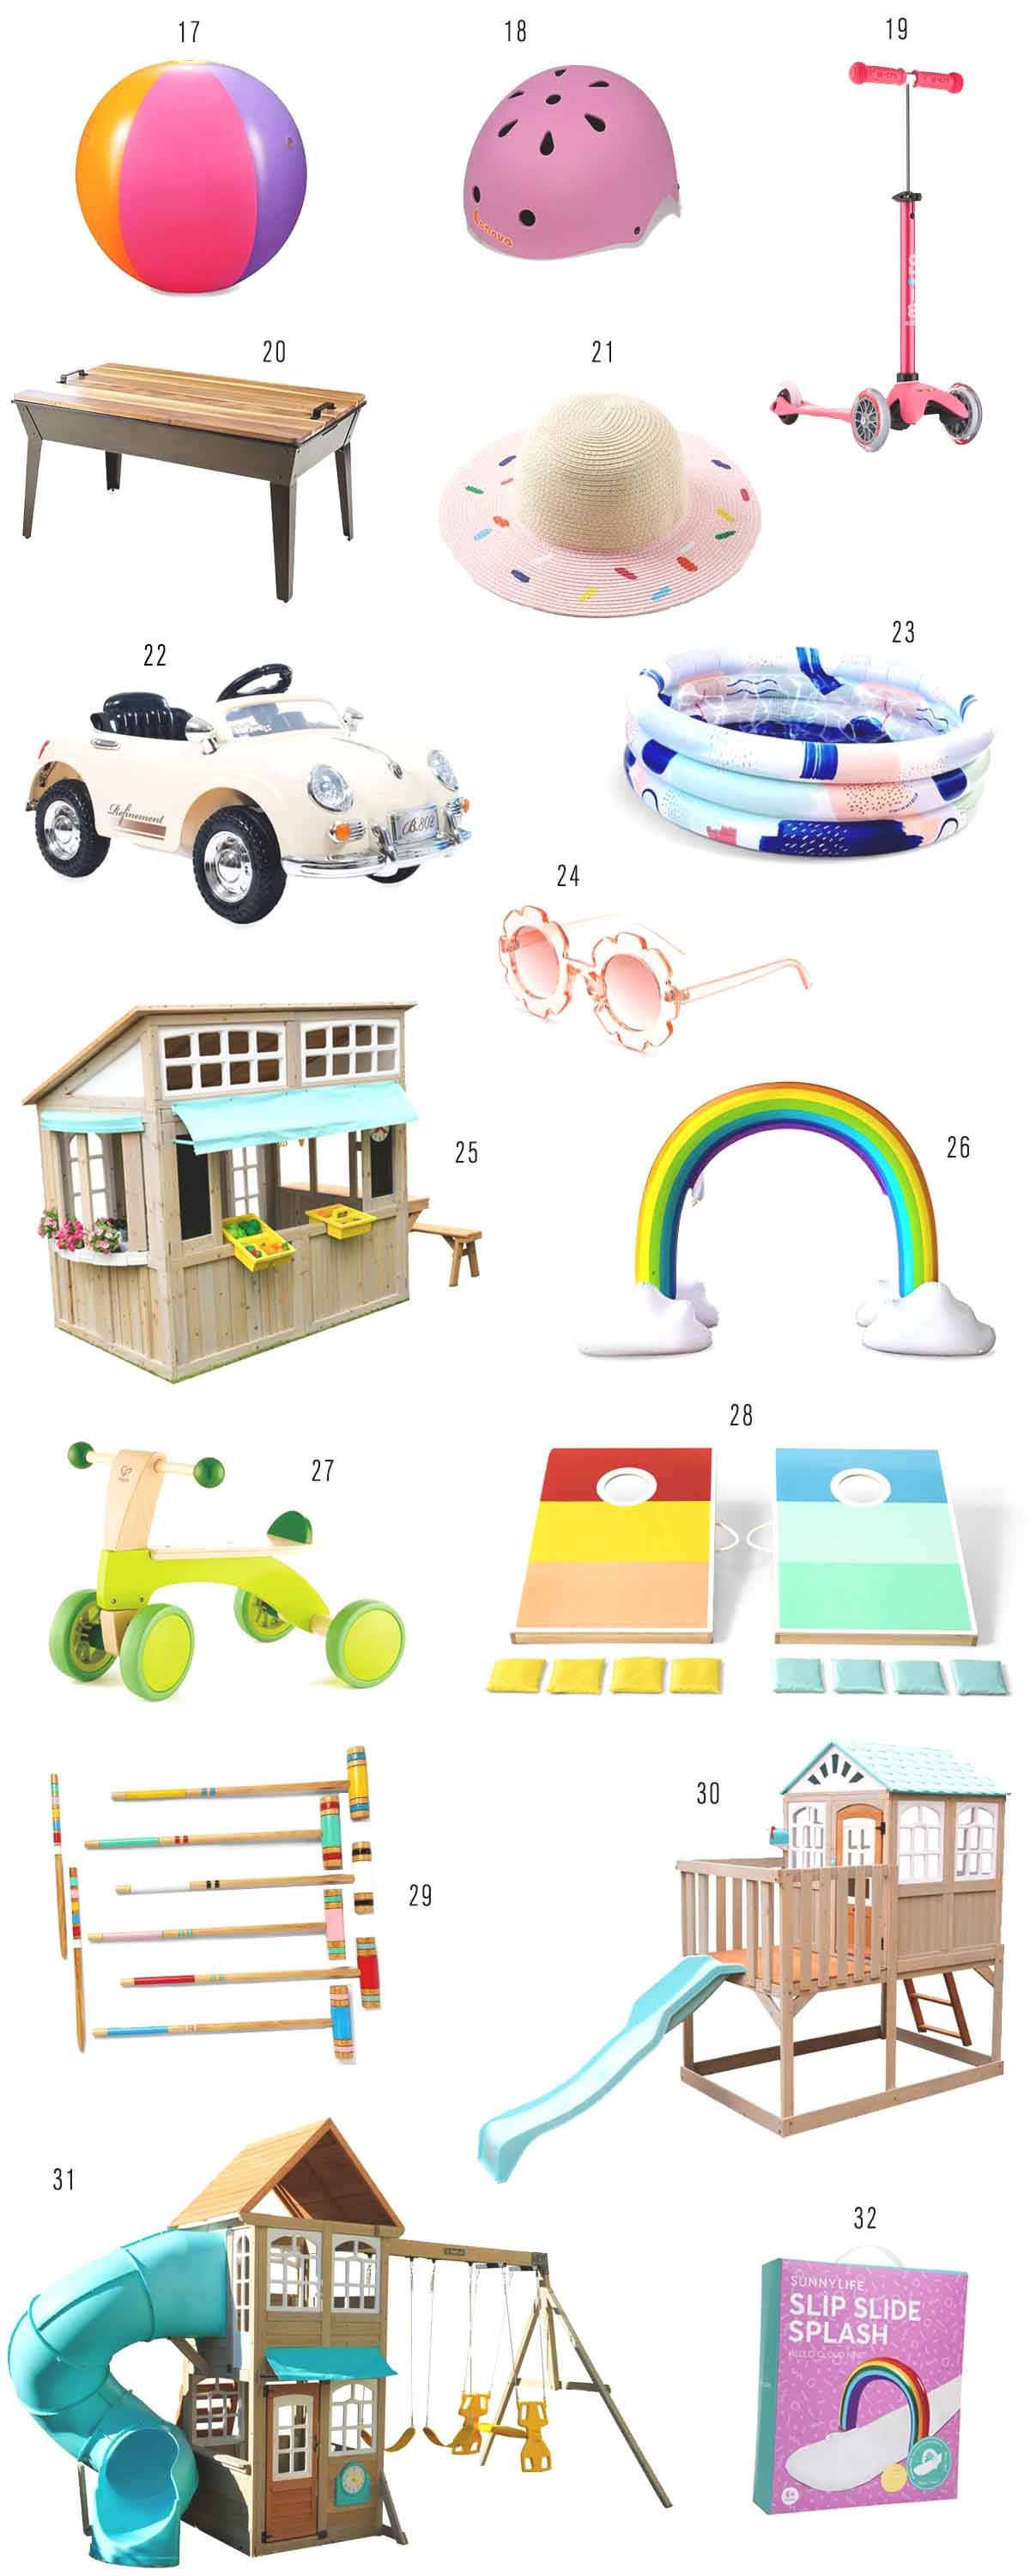 The Best Modern Outdoor Backyard Toys Shopping Guide by top Houston lifestyle blogger Ashley Rose of Sugar & Cloth